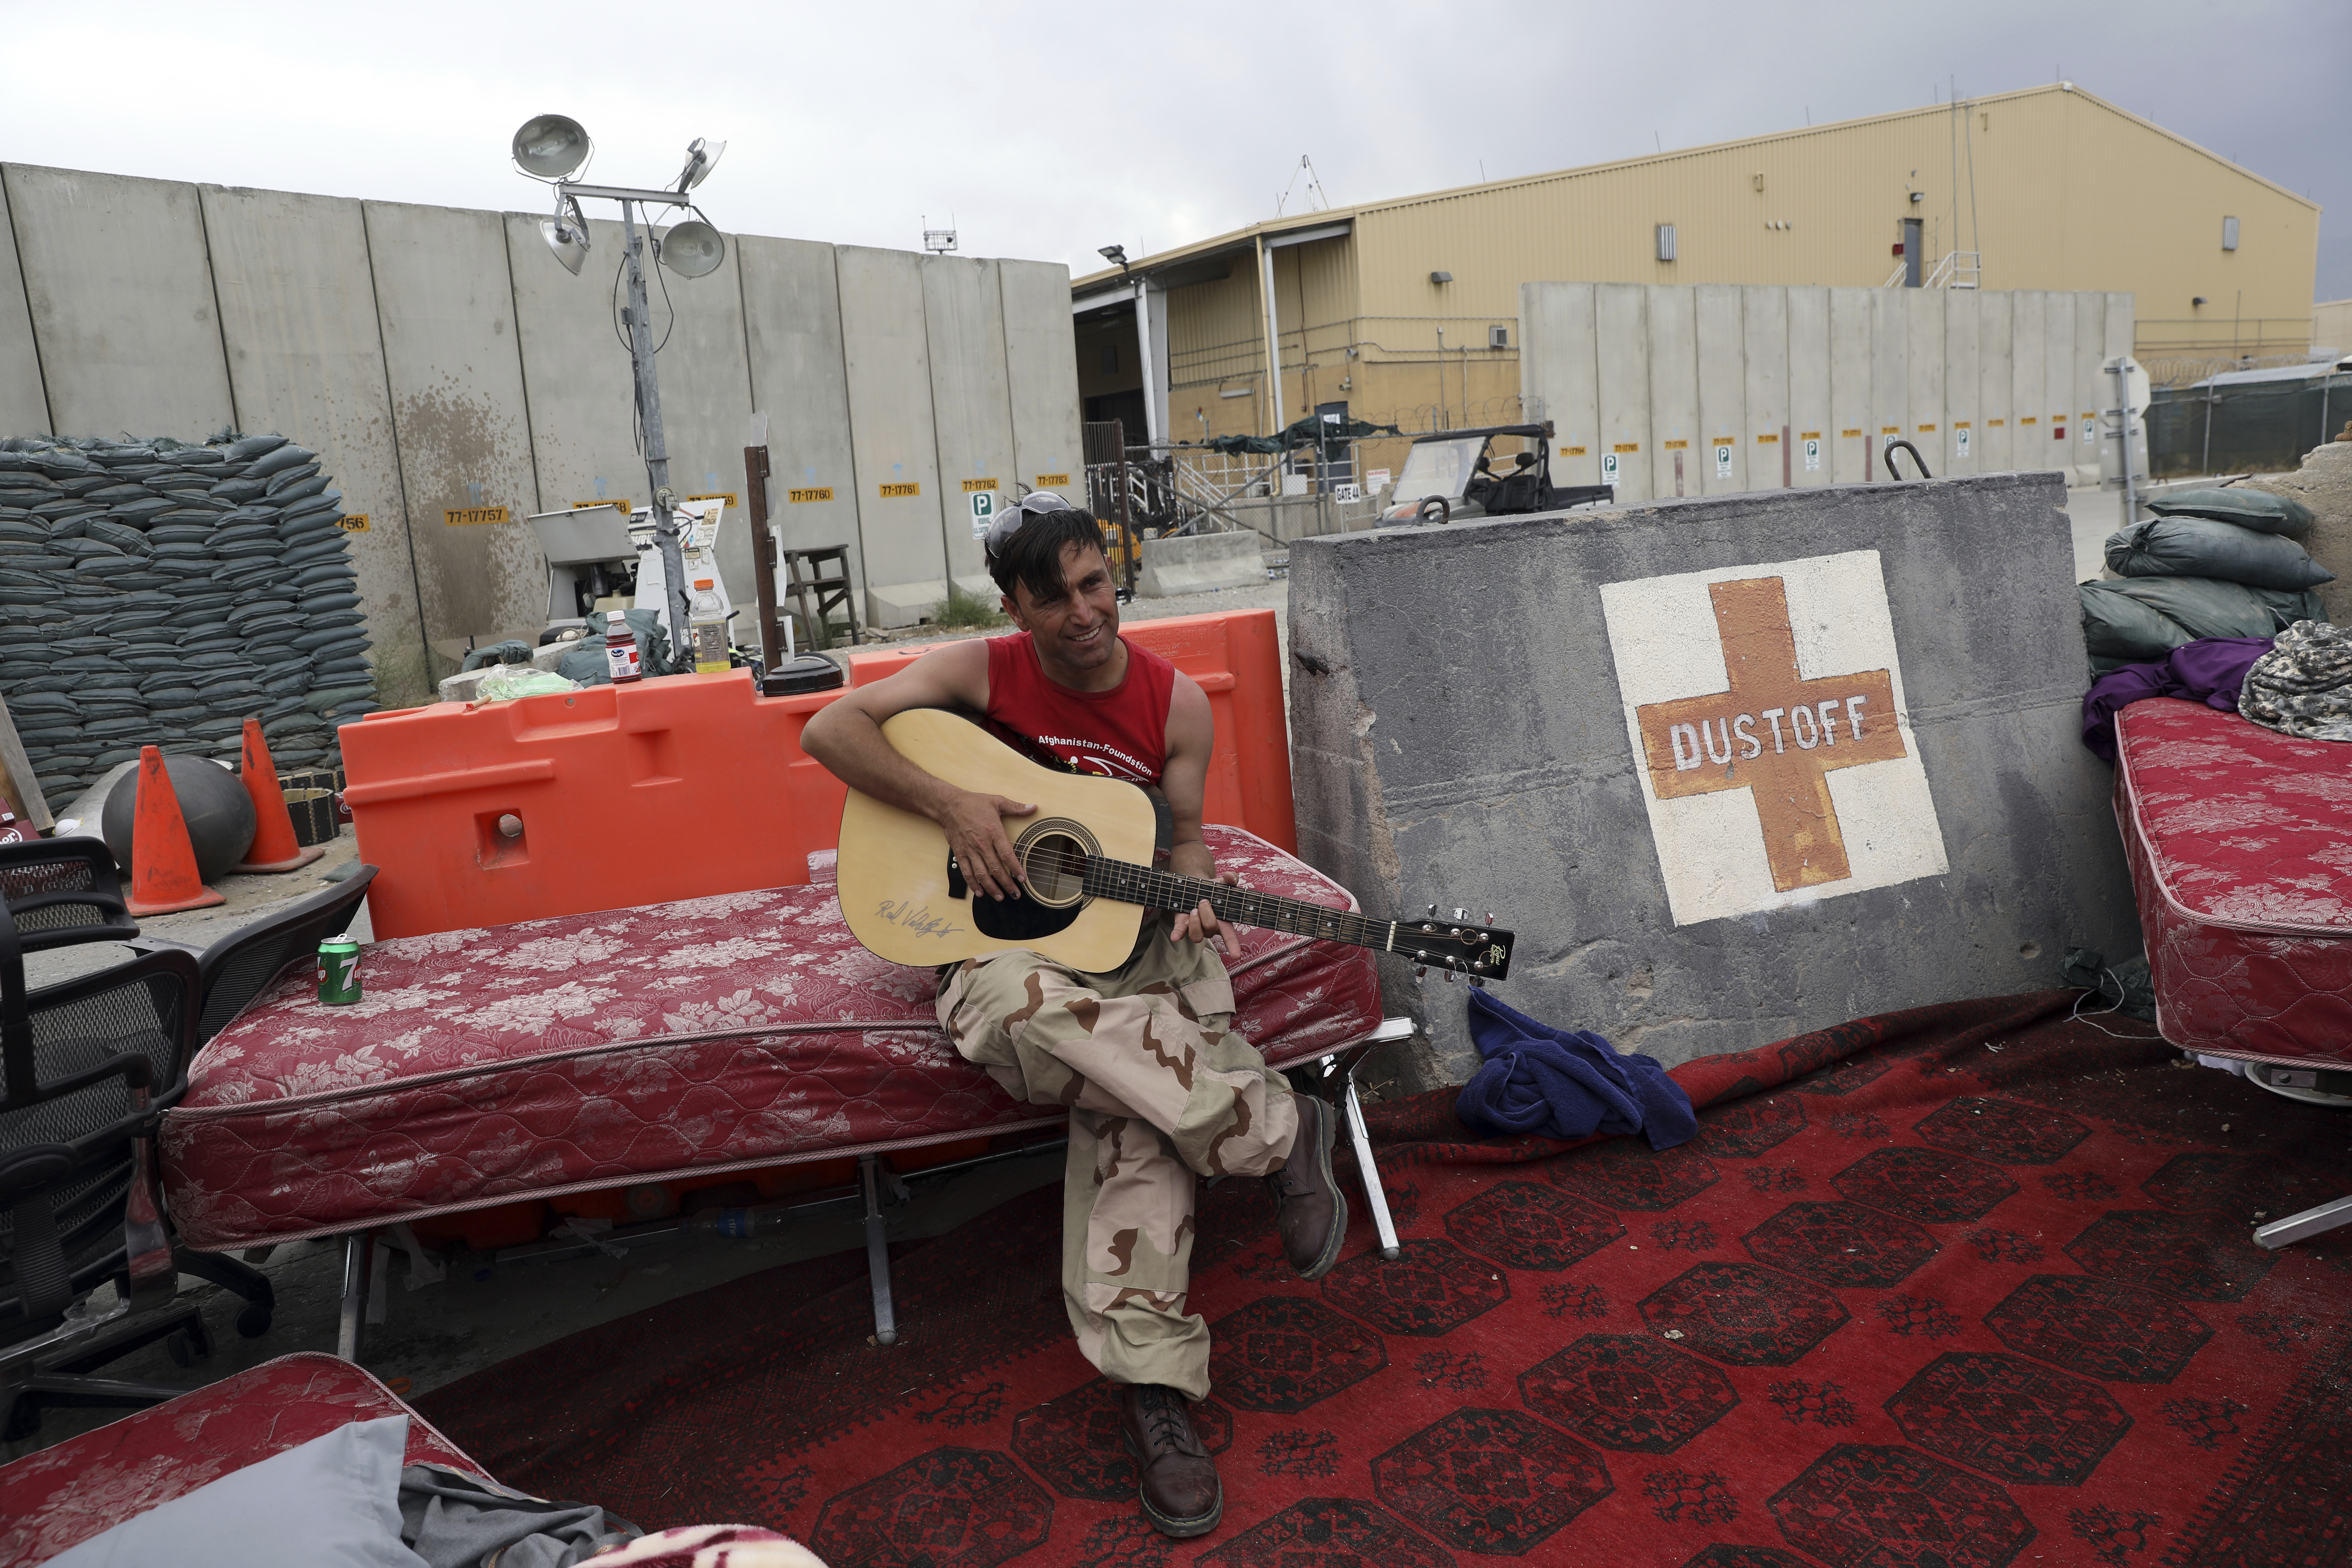 An Afghan soldier plays a guitar that was left behind after the American military departed Bagram air base, in Parwan province north of Kabul, Afghanistan, Monday, July 5, 2021. The U.S. left Afghanistan's Bagram Airfield after nearly 20 years, winding up its  forever war,  in the night, without notifying the new Afghan commander until more than two hours after they slipped away.